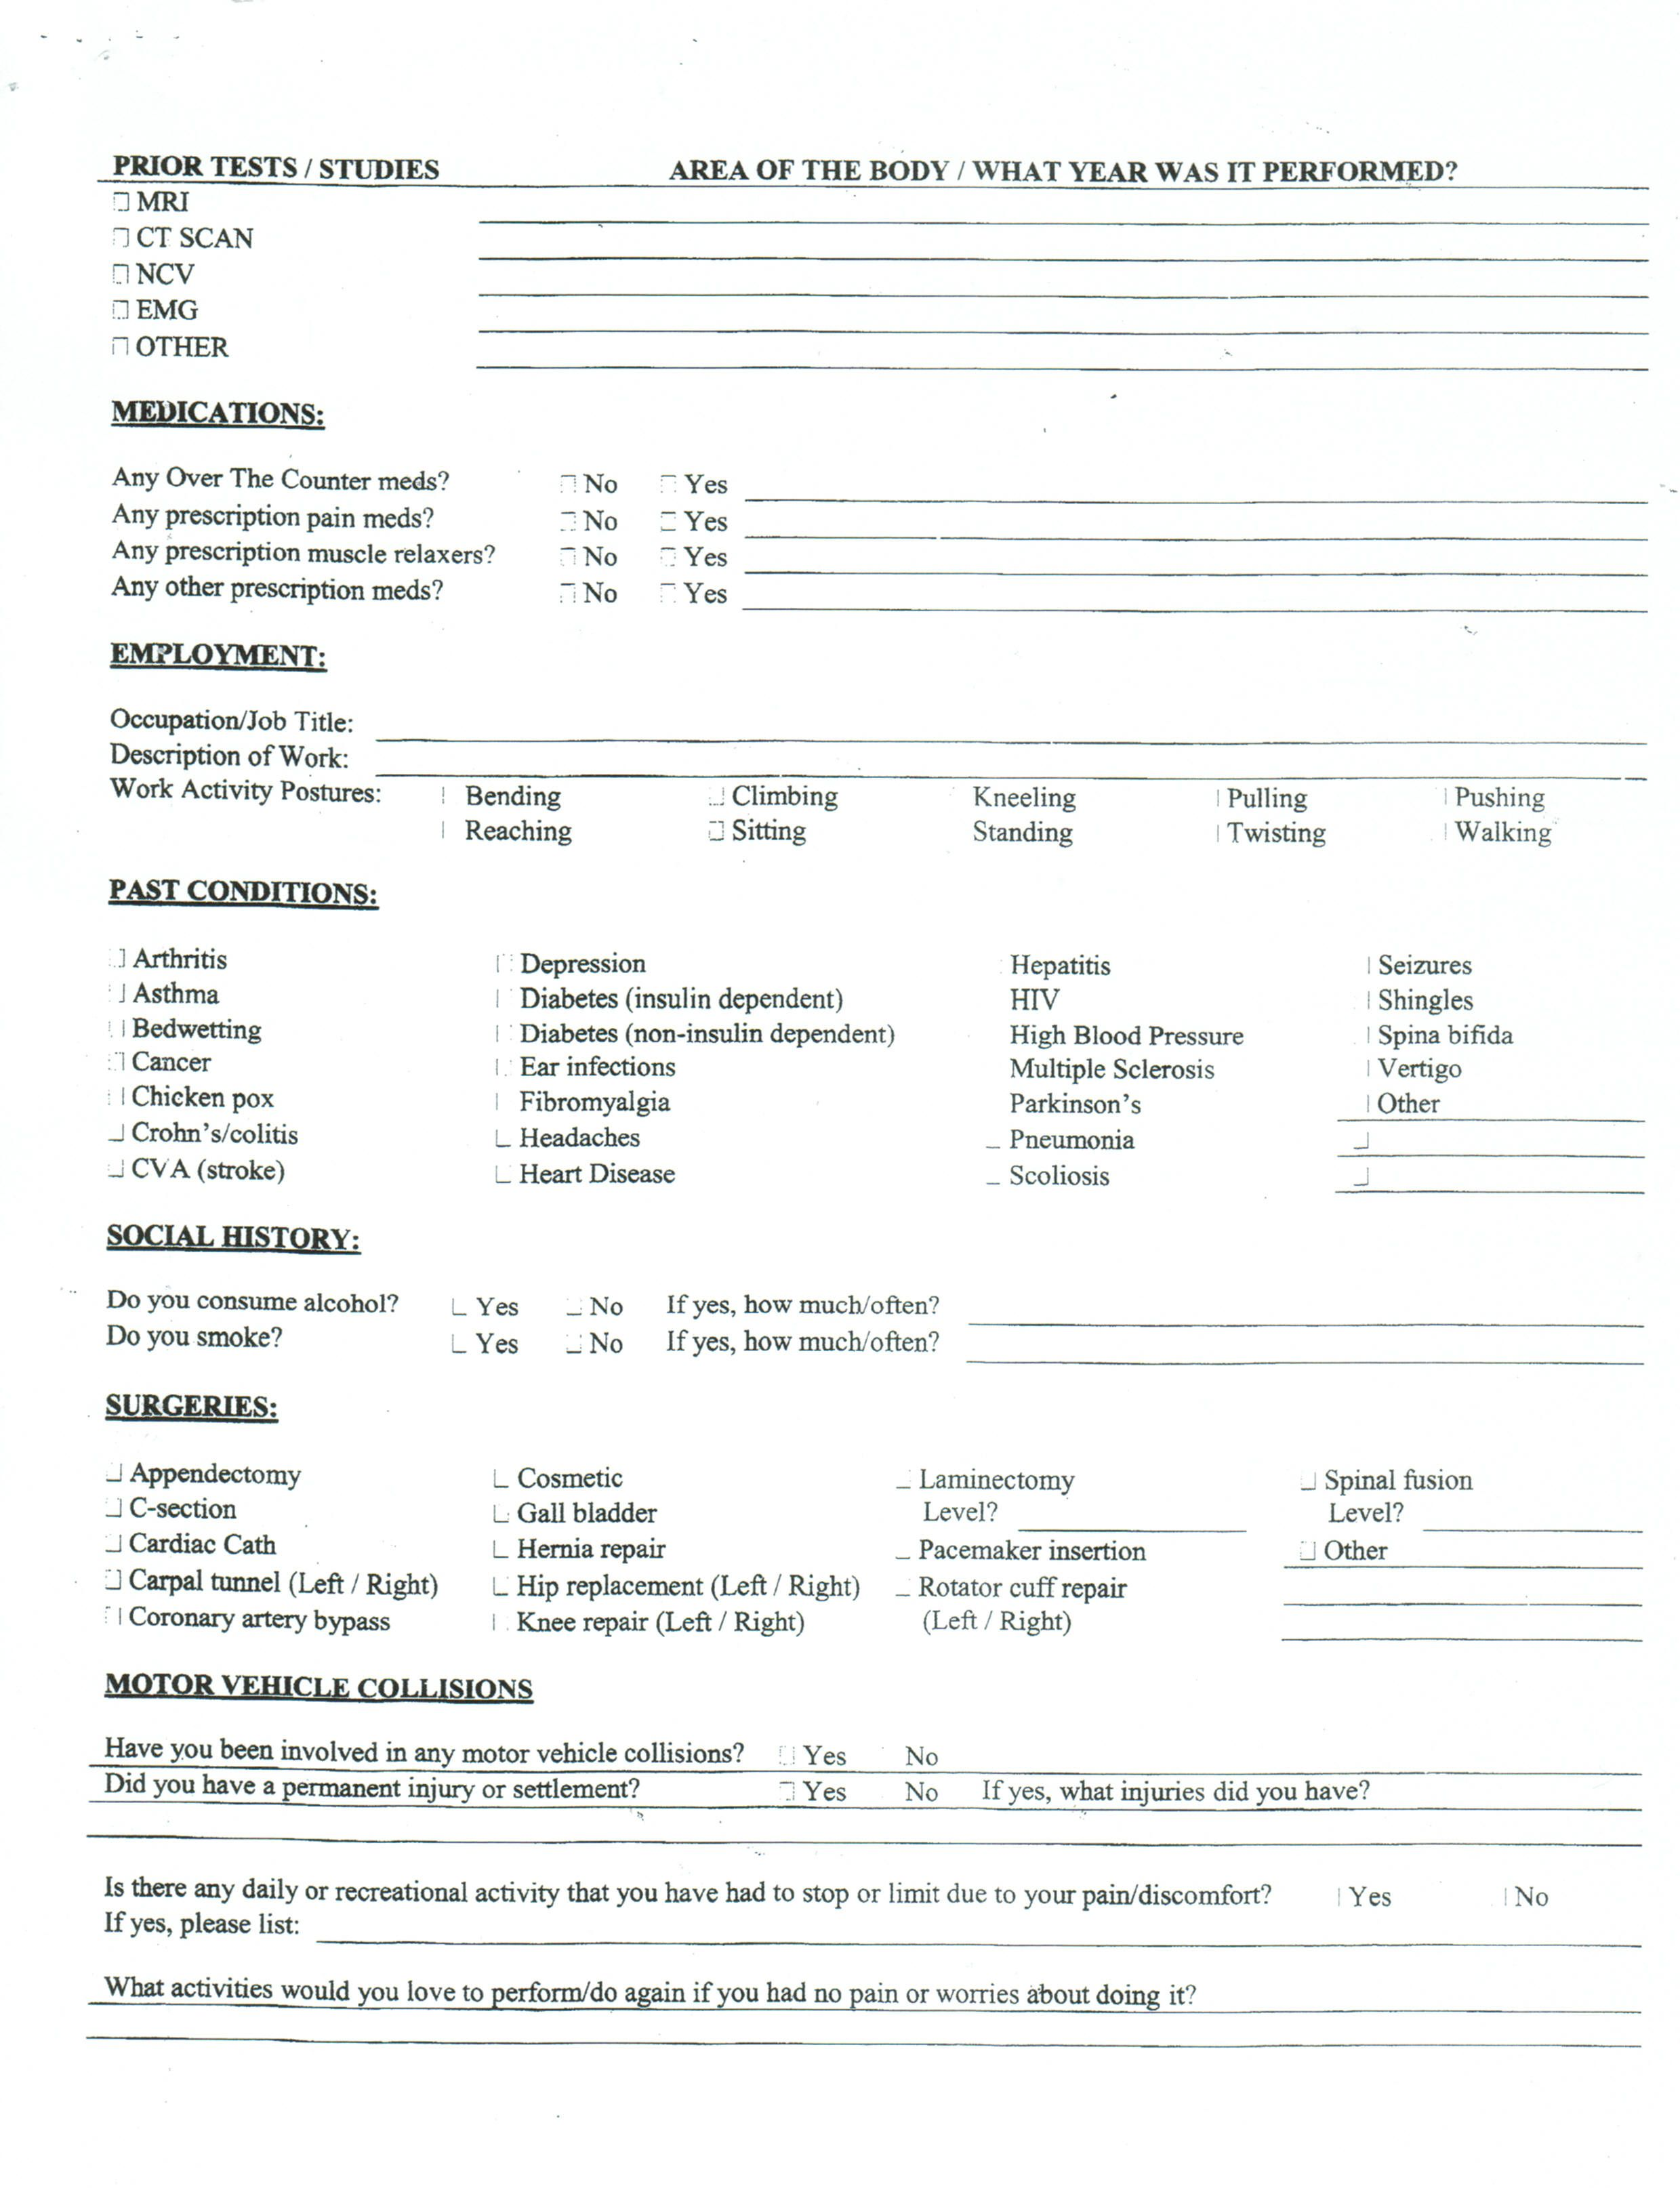 004 Shocking Patient Intake Form Template Design  Word Client Excel PdfFull